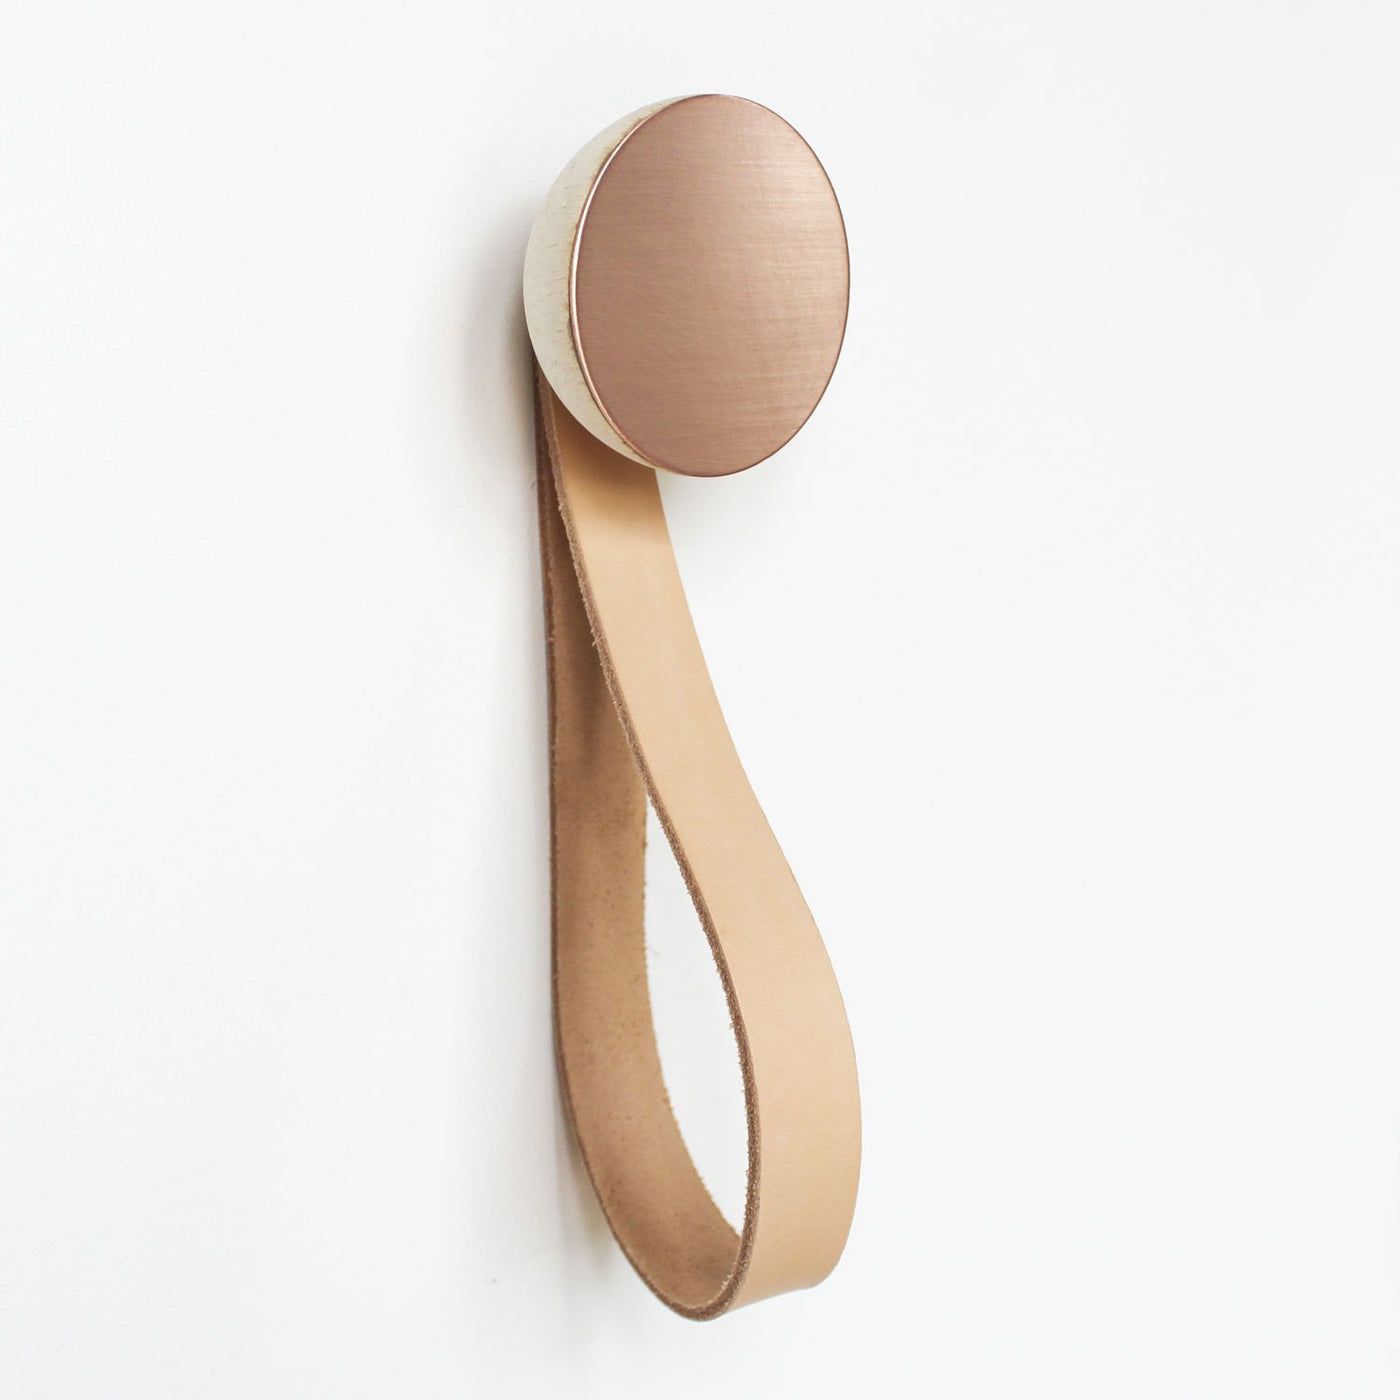 Round Beech Wood & Copper Wall Hook with Leather Loop